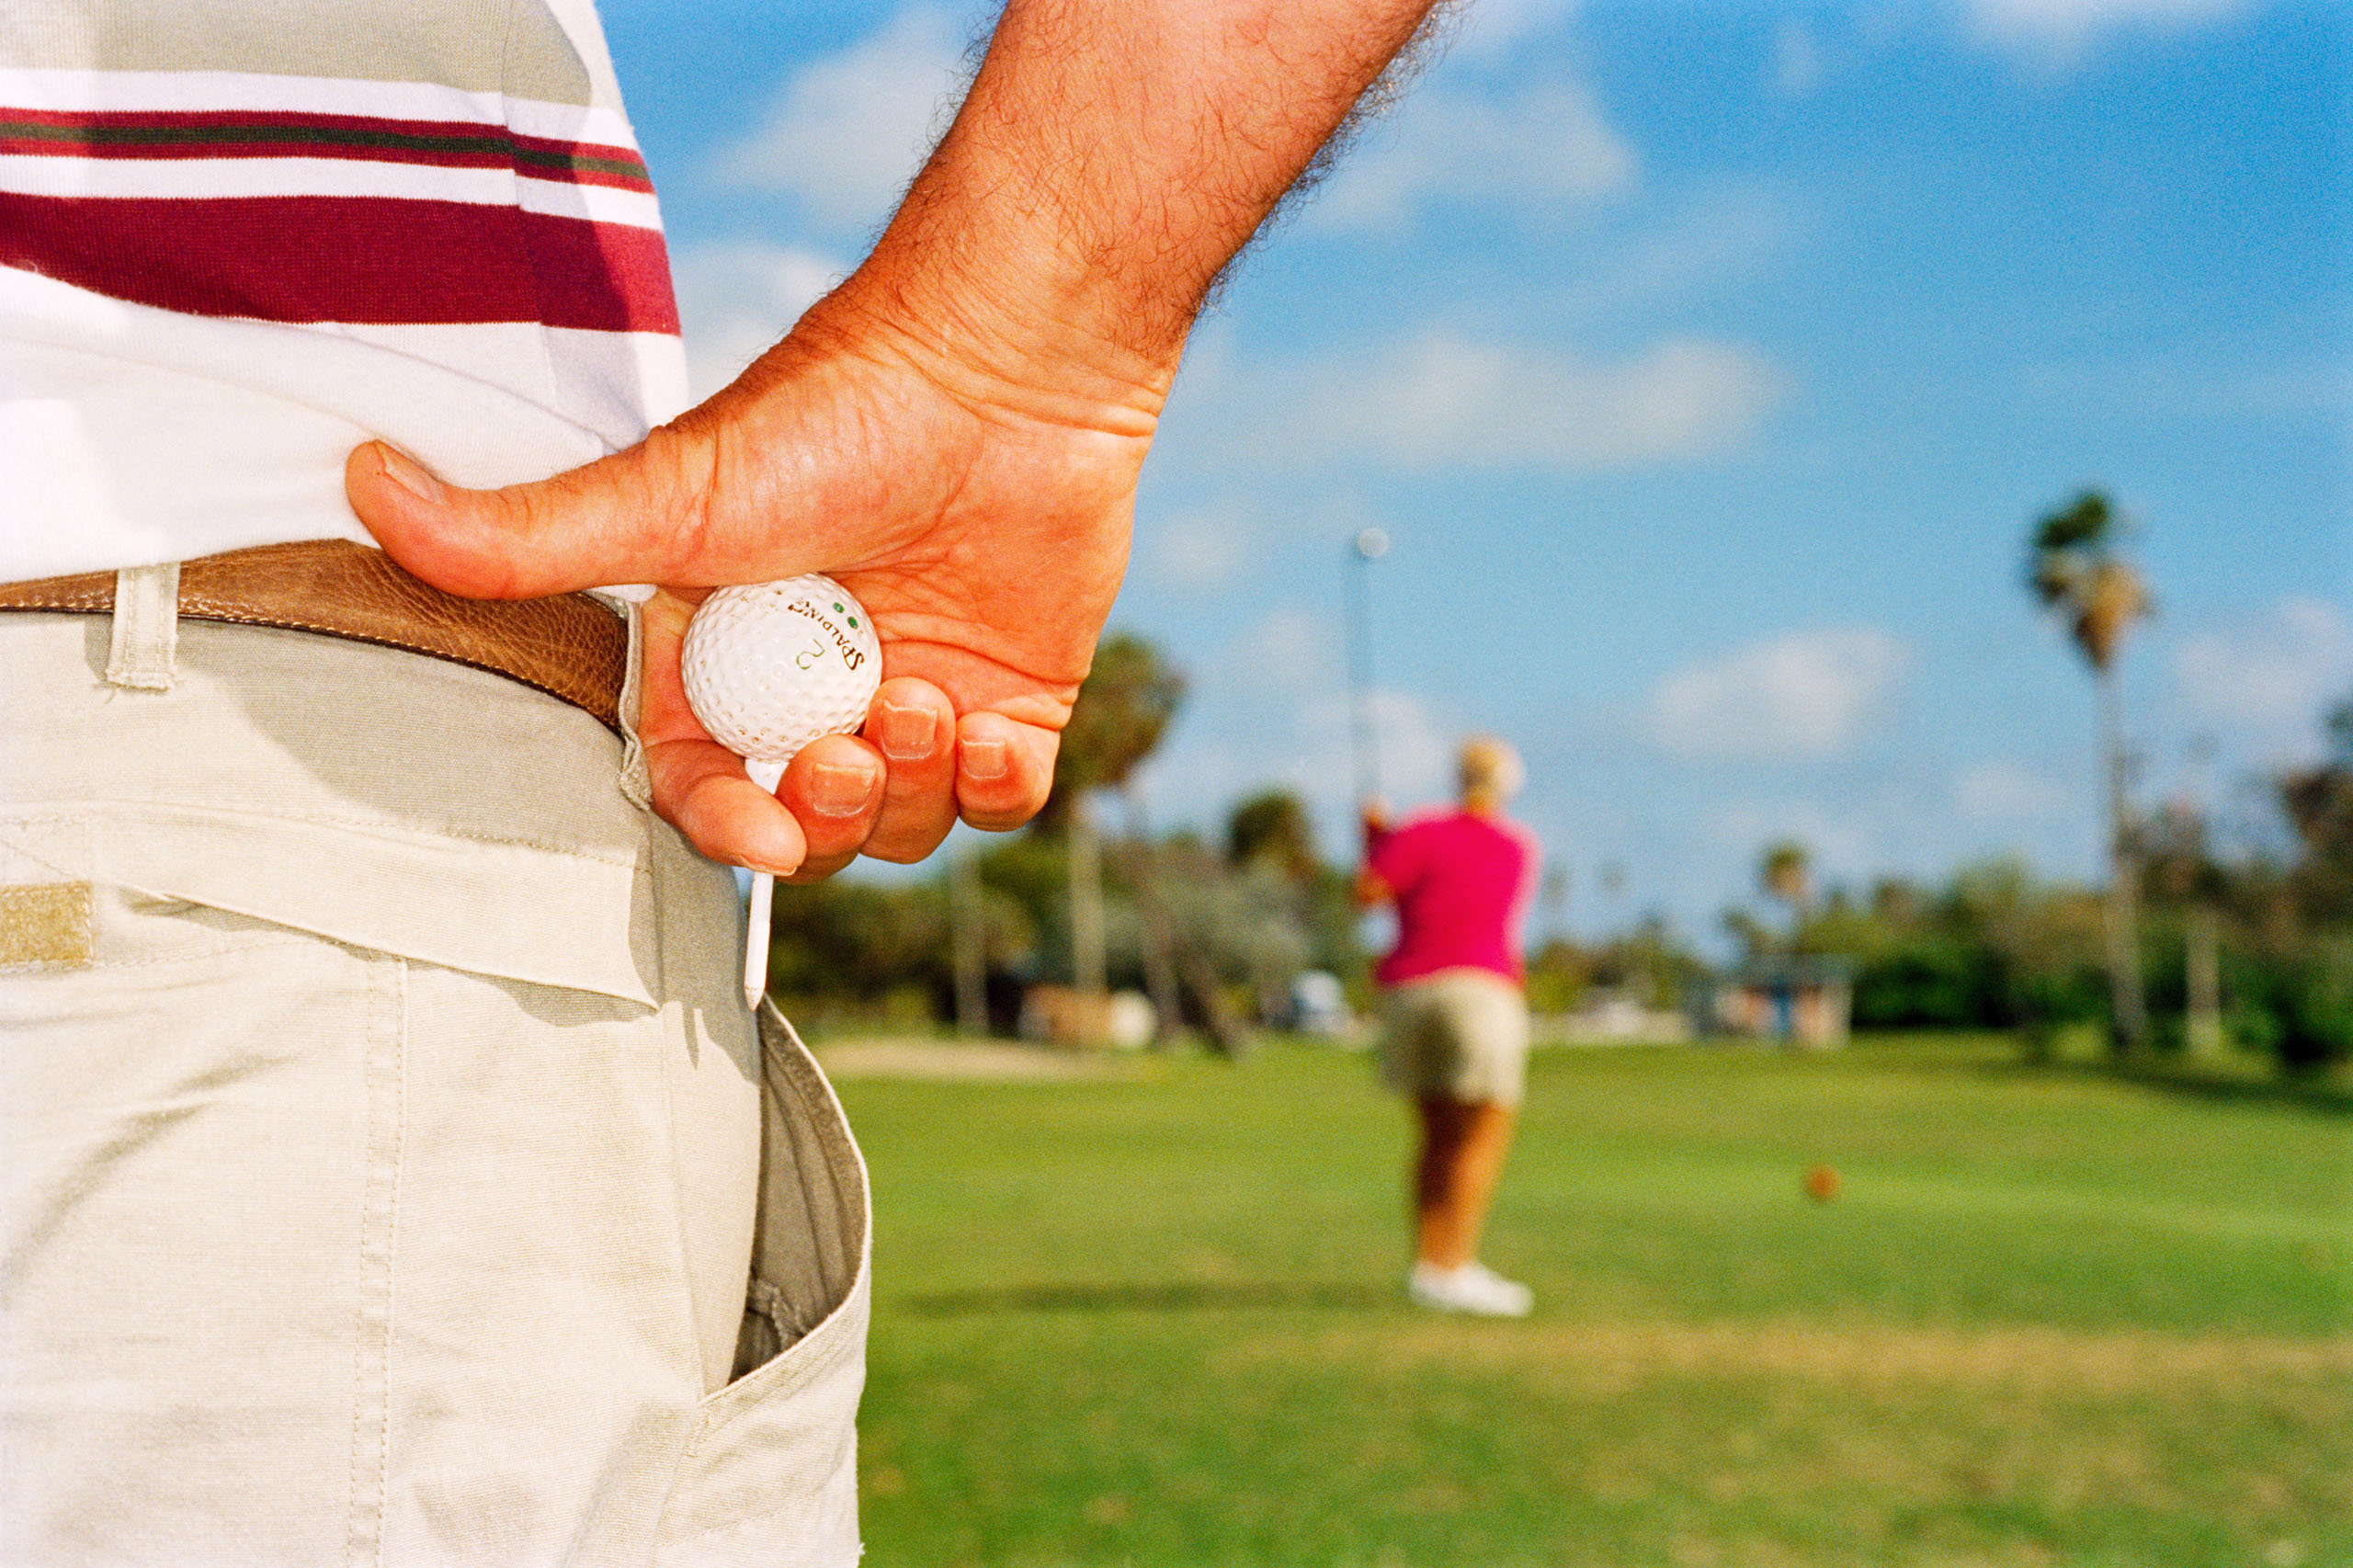 Florida Golf In 1997 Wasn't Much Different From 1987. Or 1977. Photo by Martin Parr.